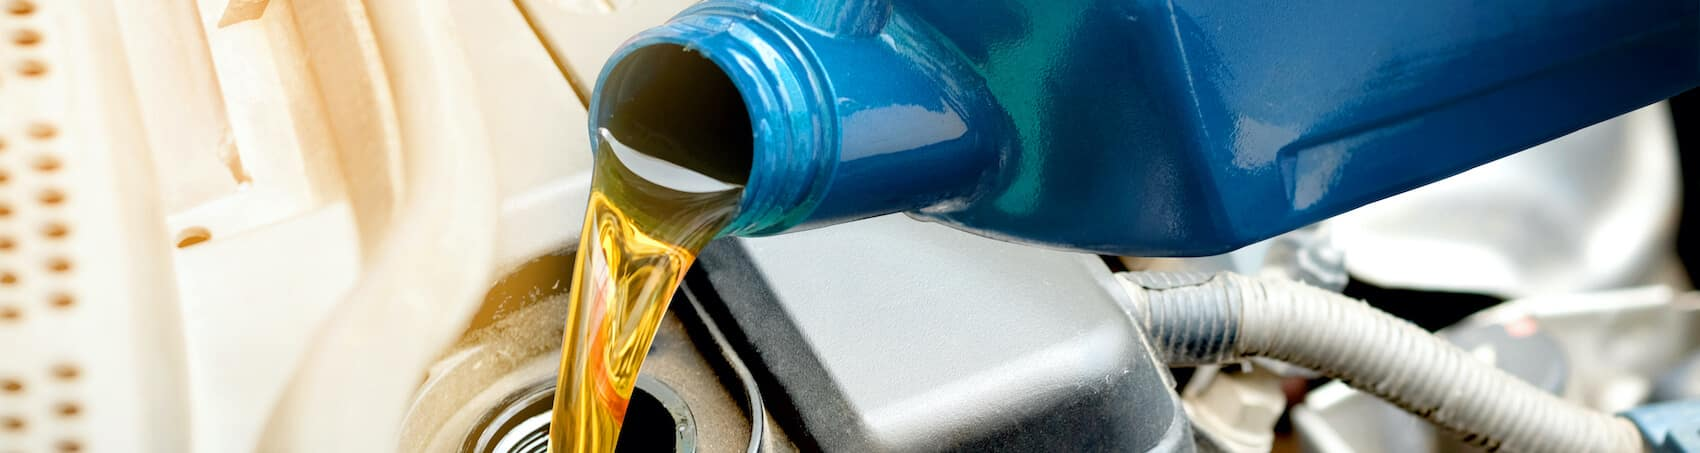 Changing Car Oil near Upper East Side NY